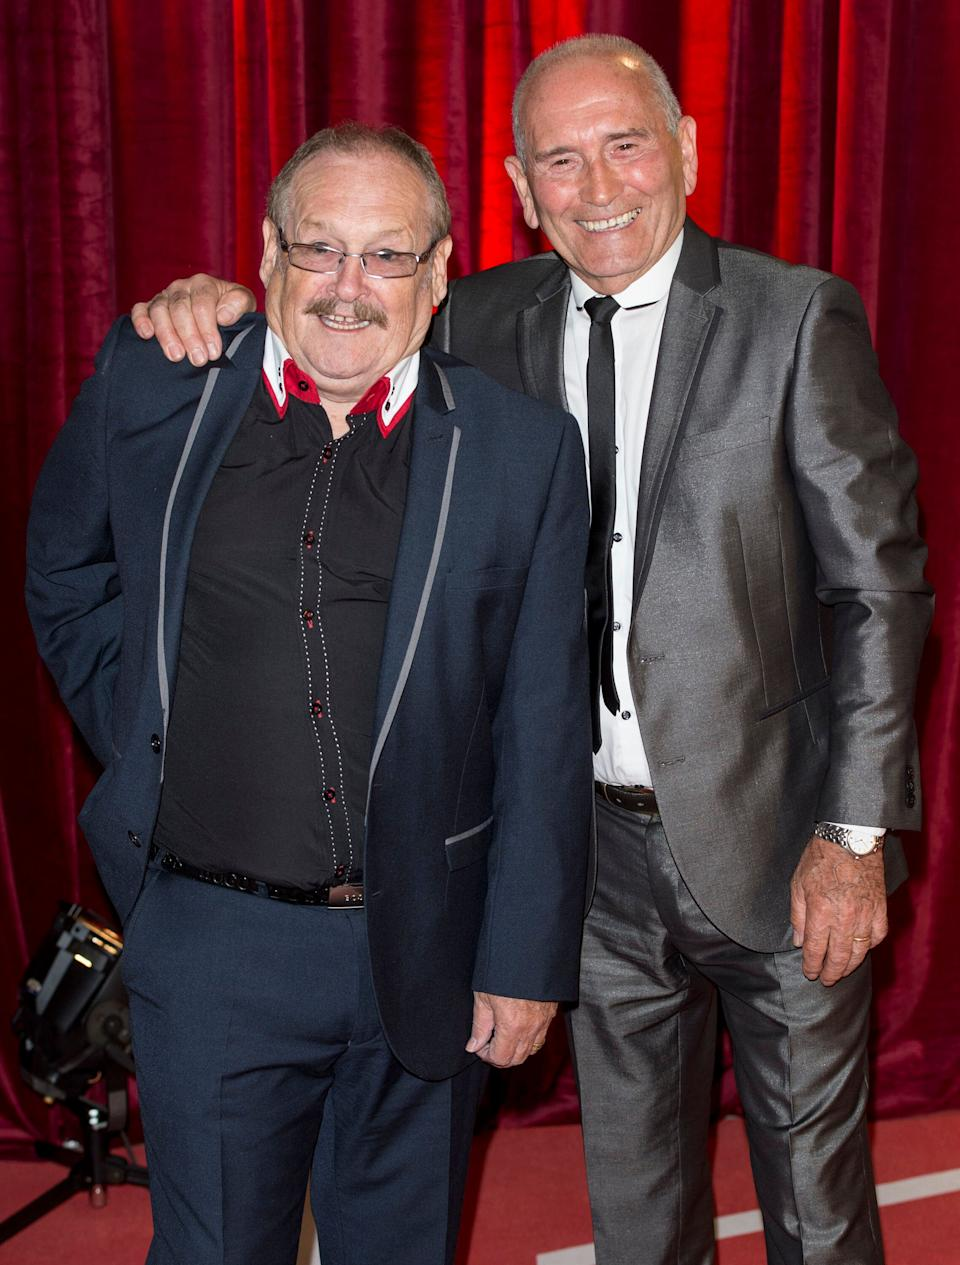 Bobby Ball and Tommy Cannon at the British Soap Awards in 2013 (Photo: Mark Cuthbert via Getty Images)